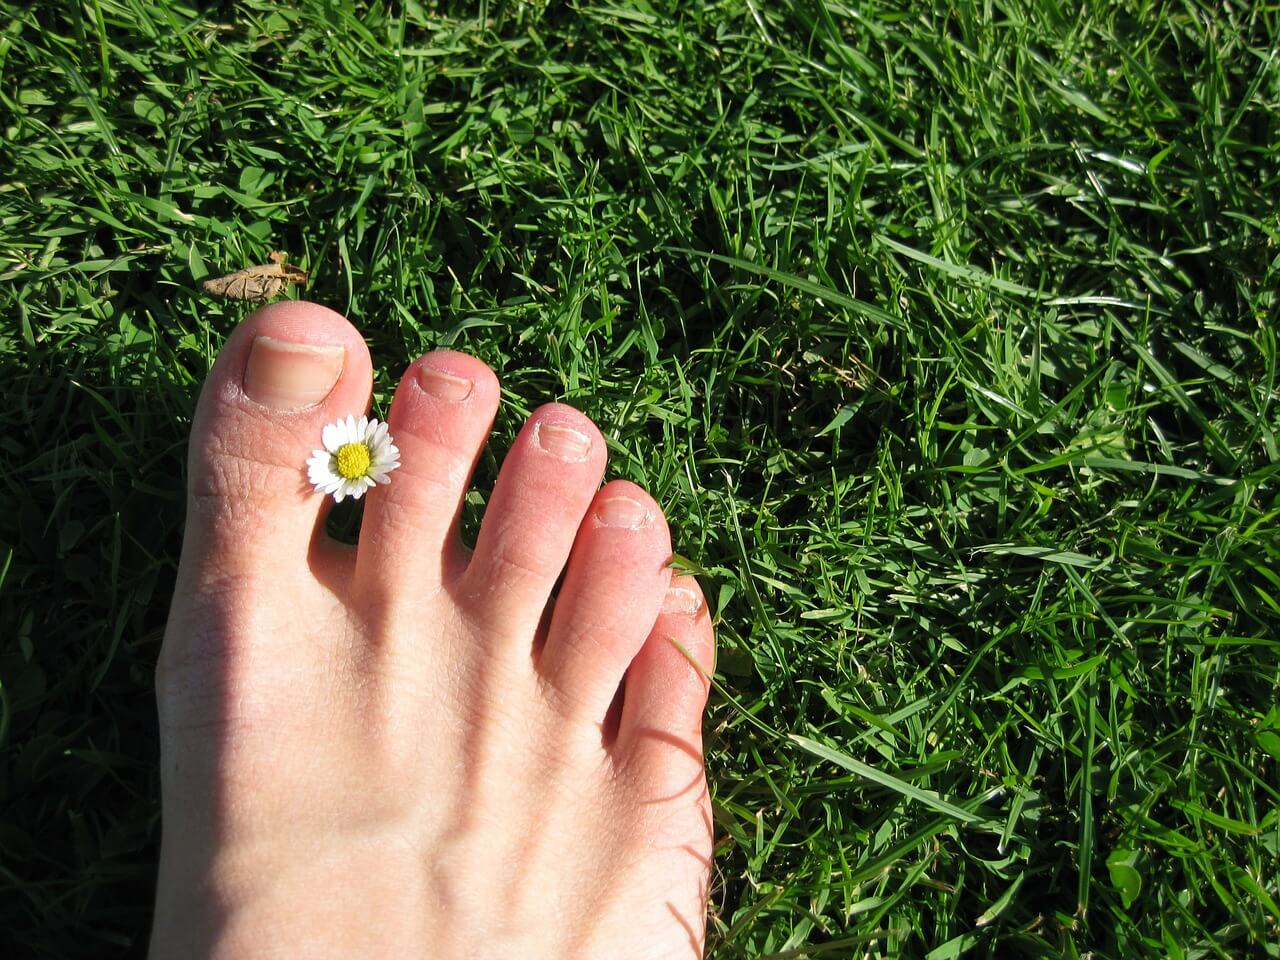 Care For Your Dry Feet With These Natural Remedies